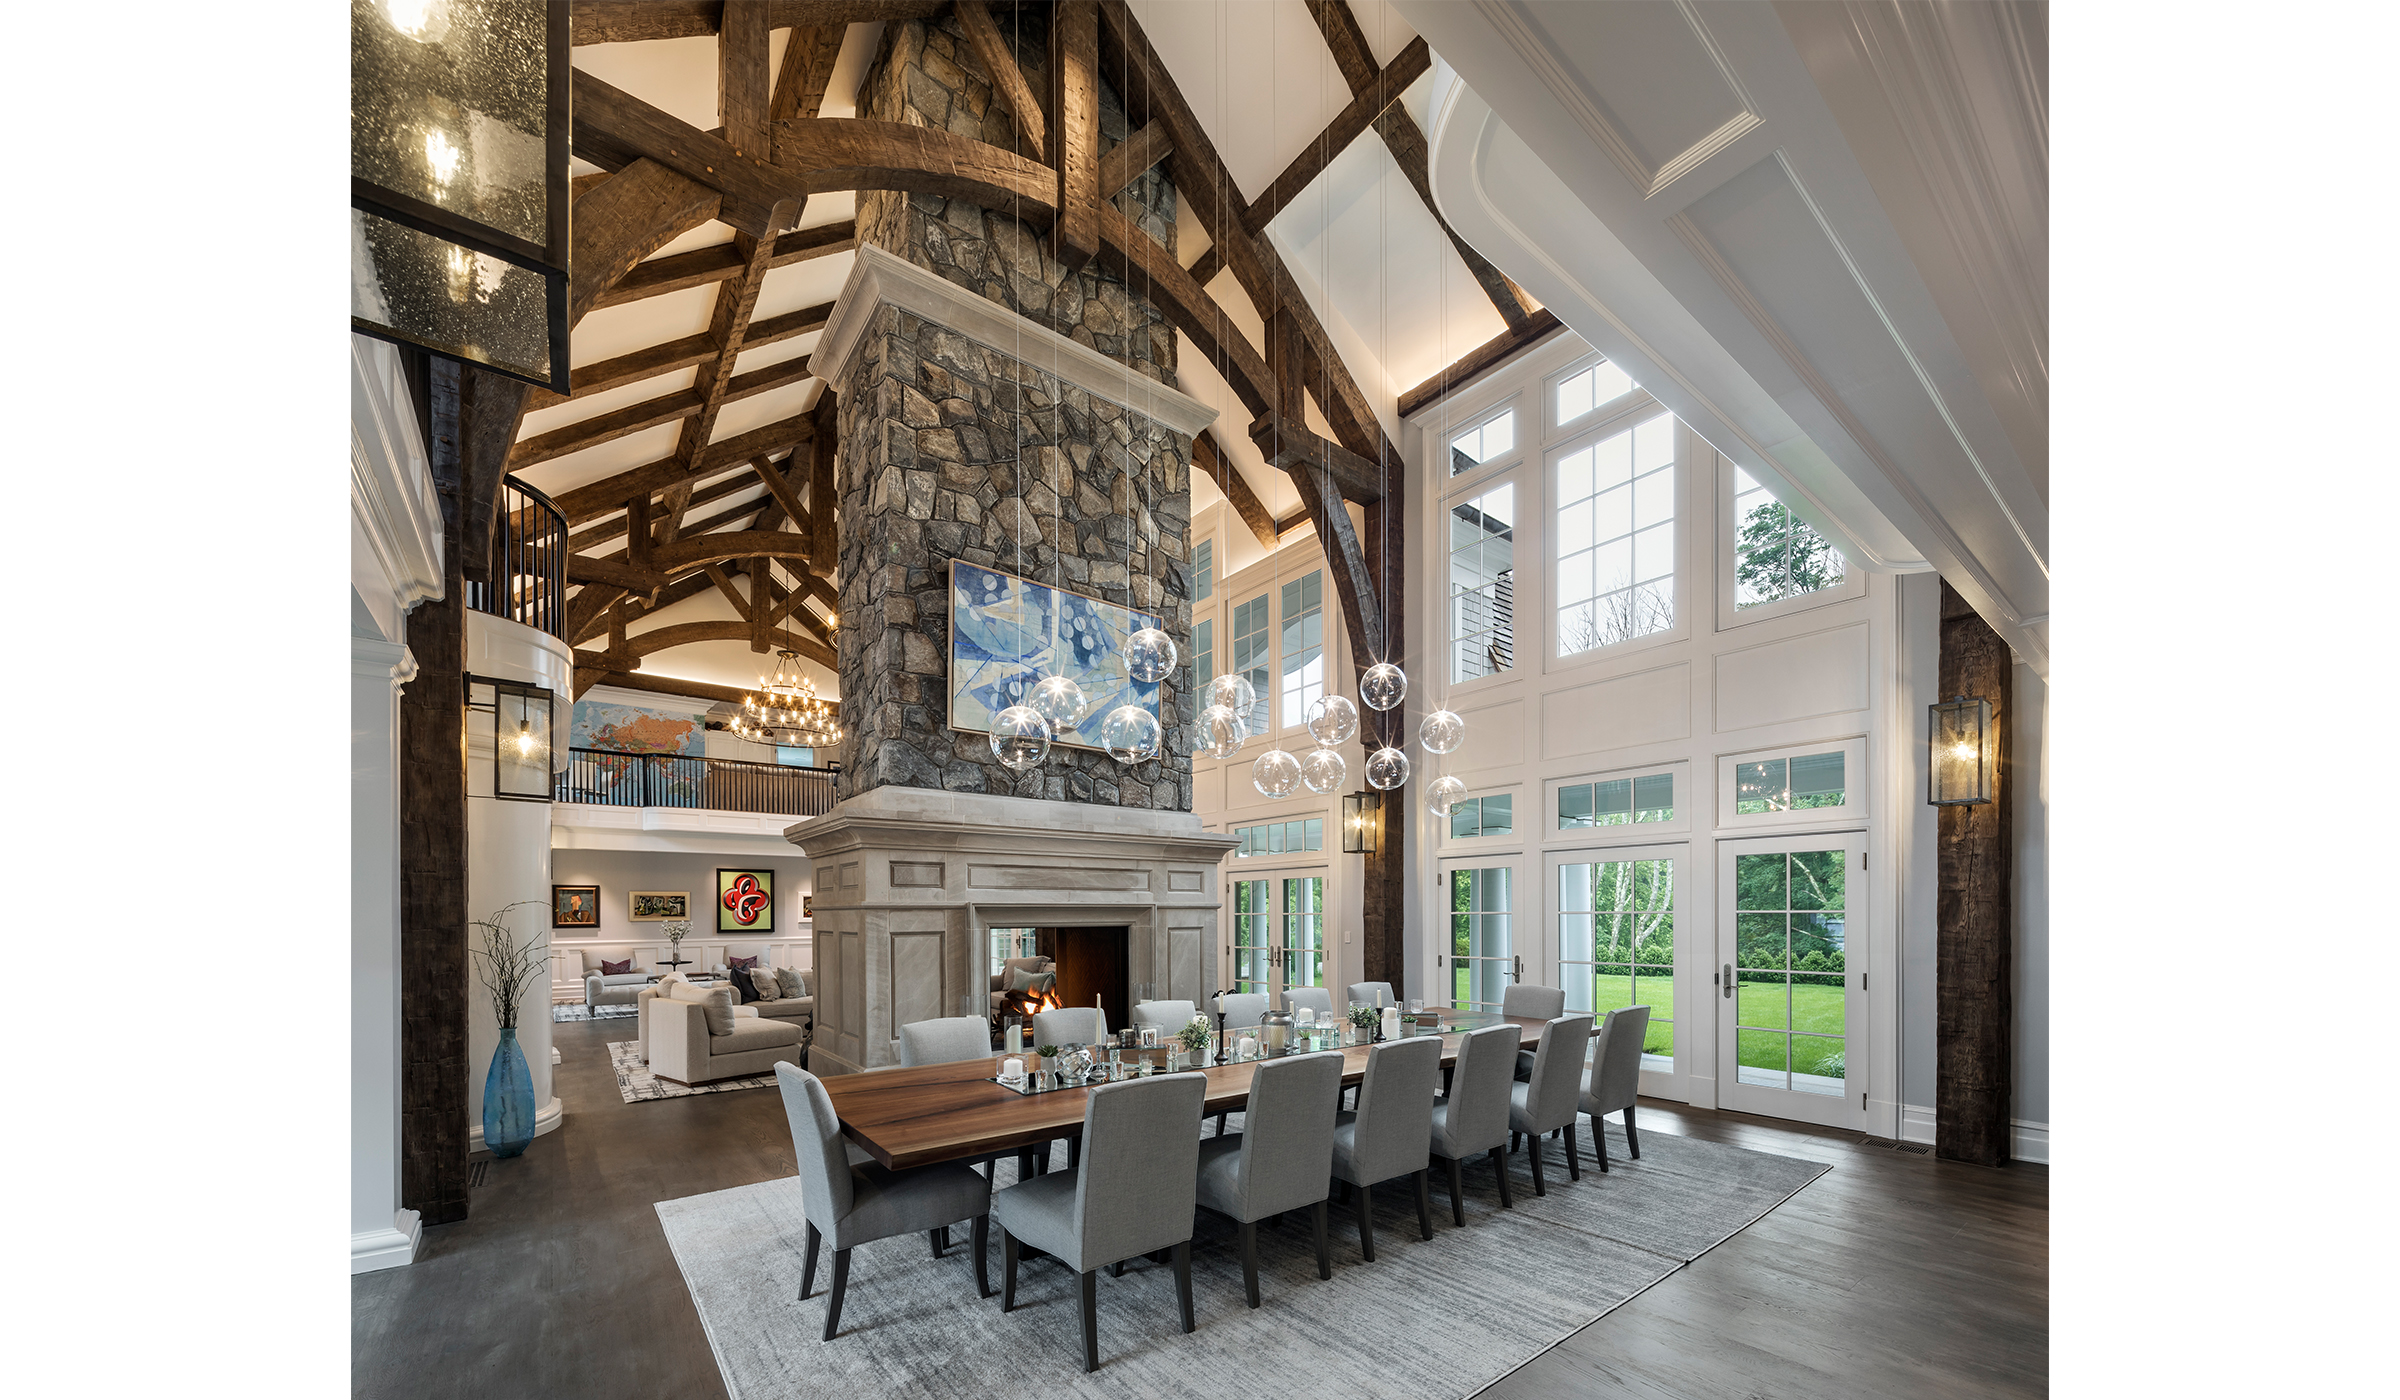 Greenwich Gambrel great hall with dining room and two sided fireplace